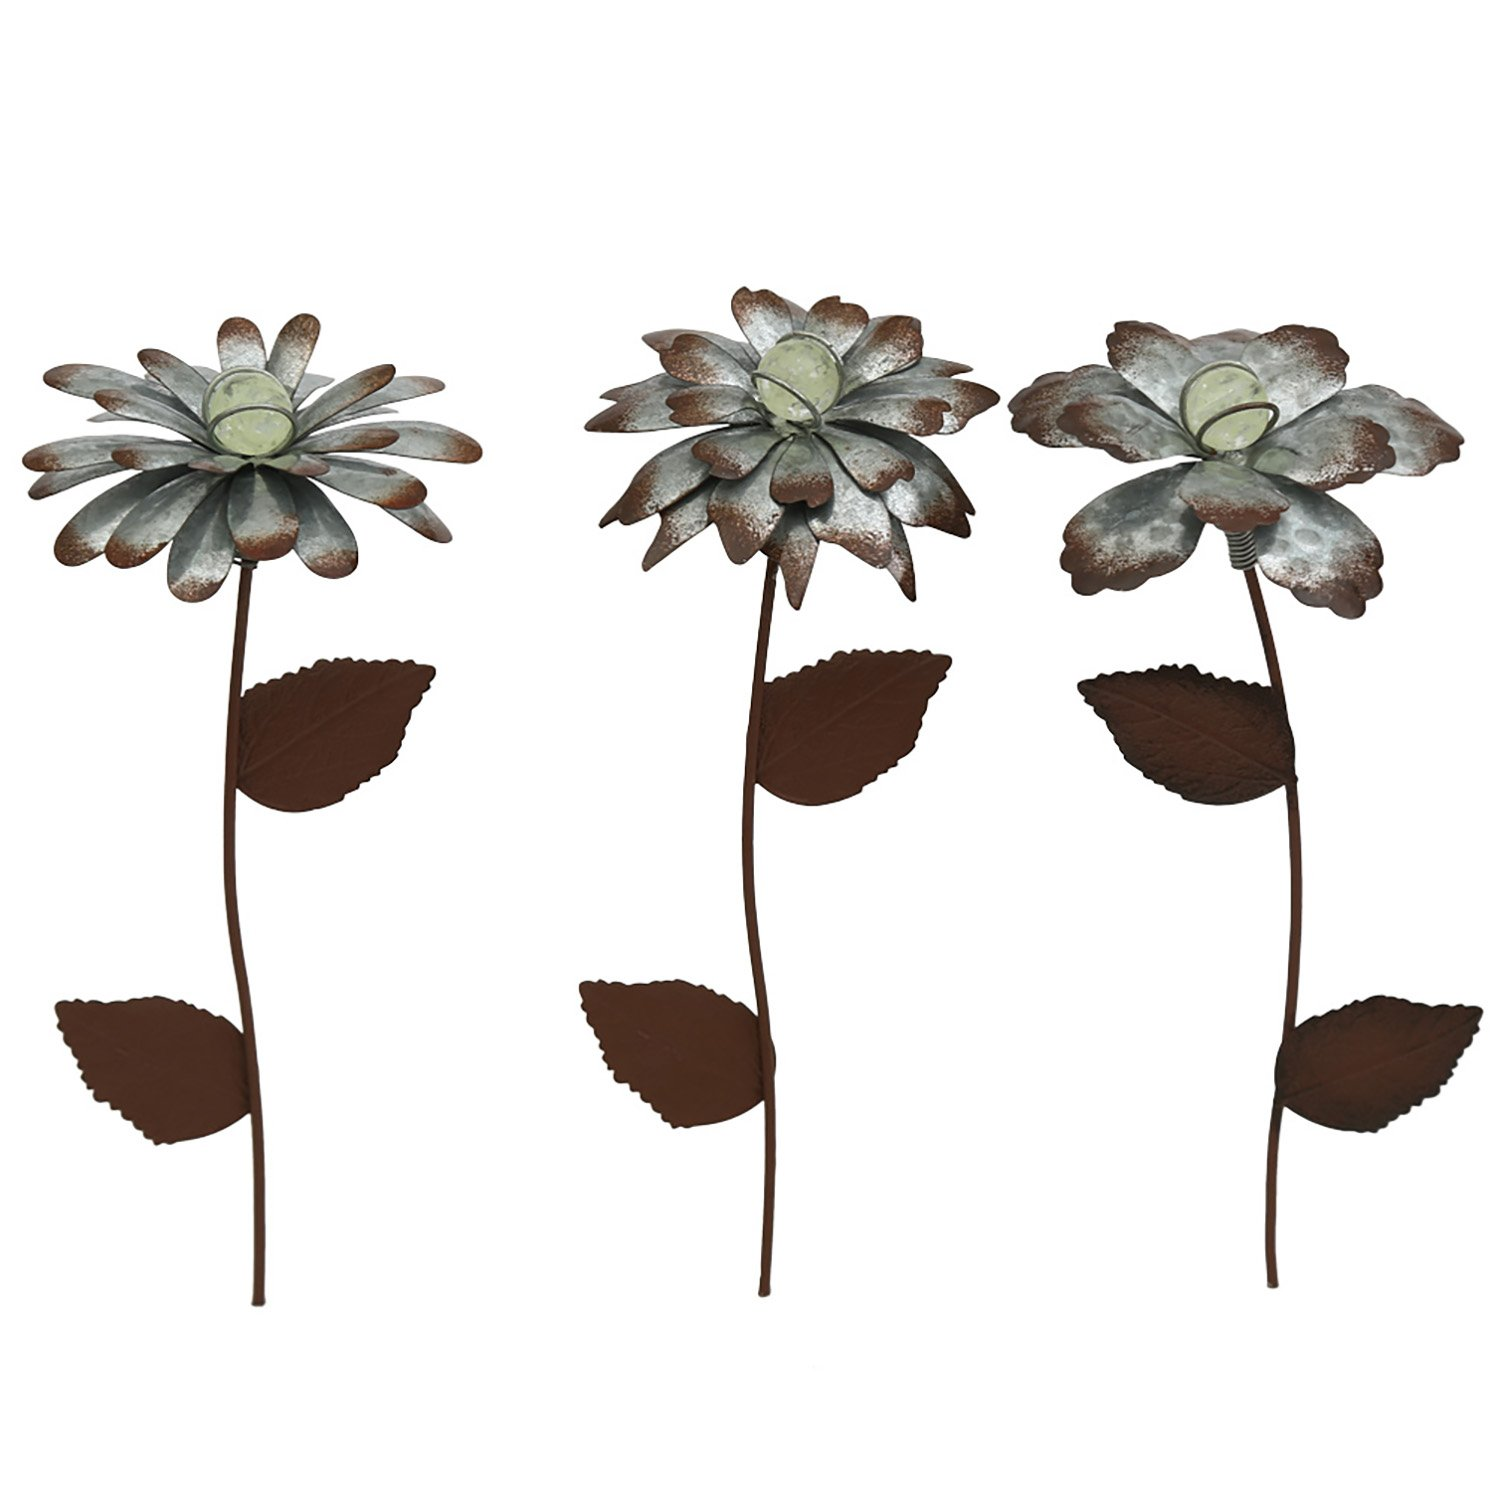 Cedar Home Galvanized Floral Garden Stake Outdoor Glow in Dark Plant Pick Water Proof Metal Stick Art Ornament Decor for Lawn Yard Patio, 4''W x 1.5''D x 14''H, 3 Set